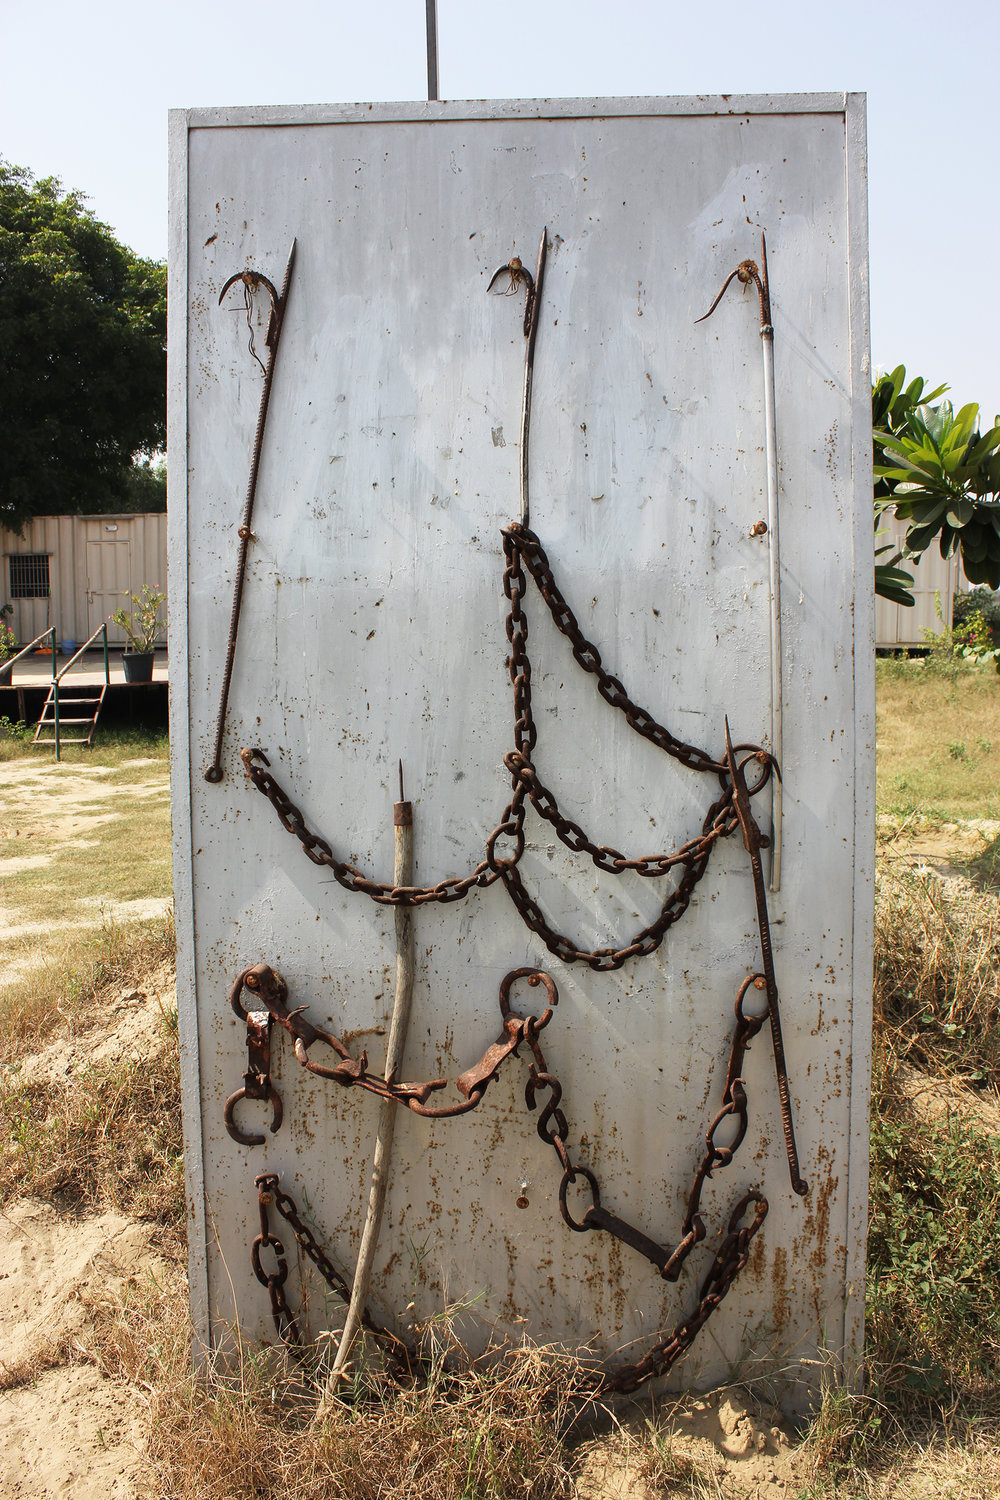 Close-up of the bullhooks and chains.